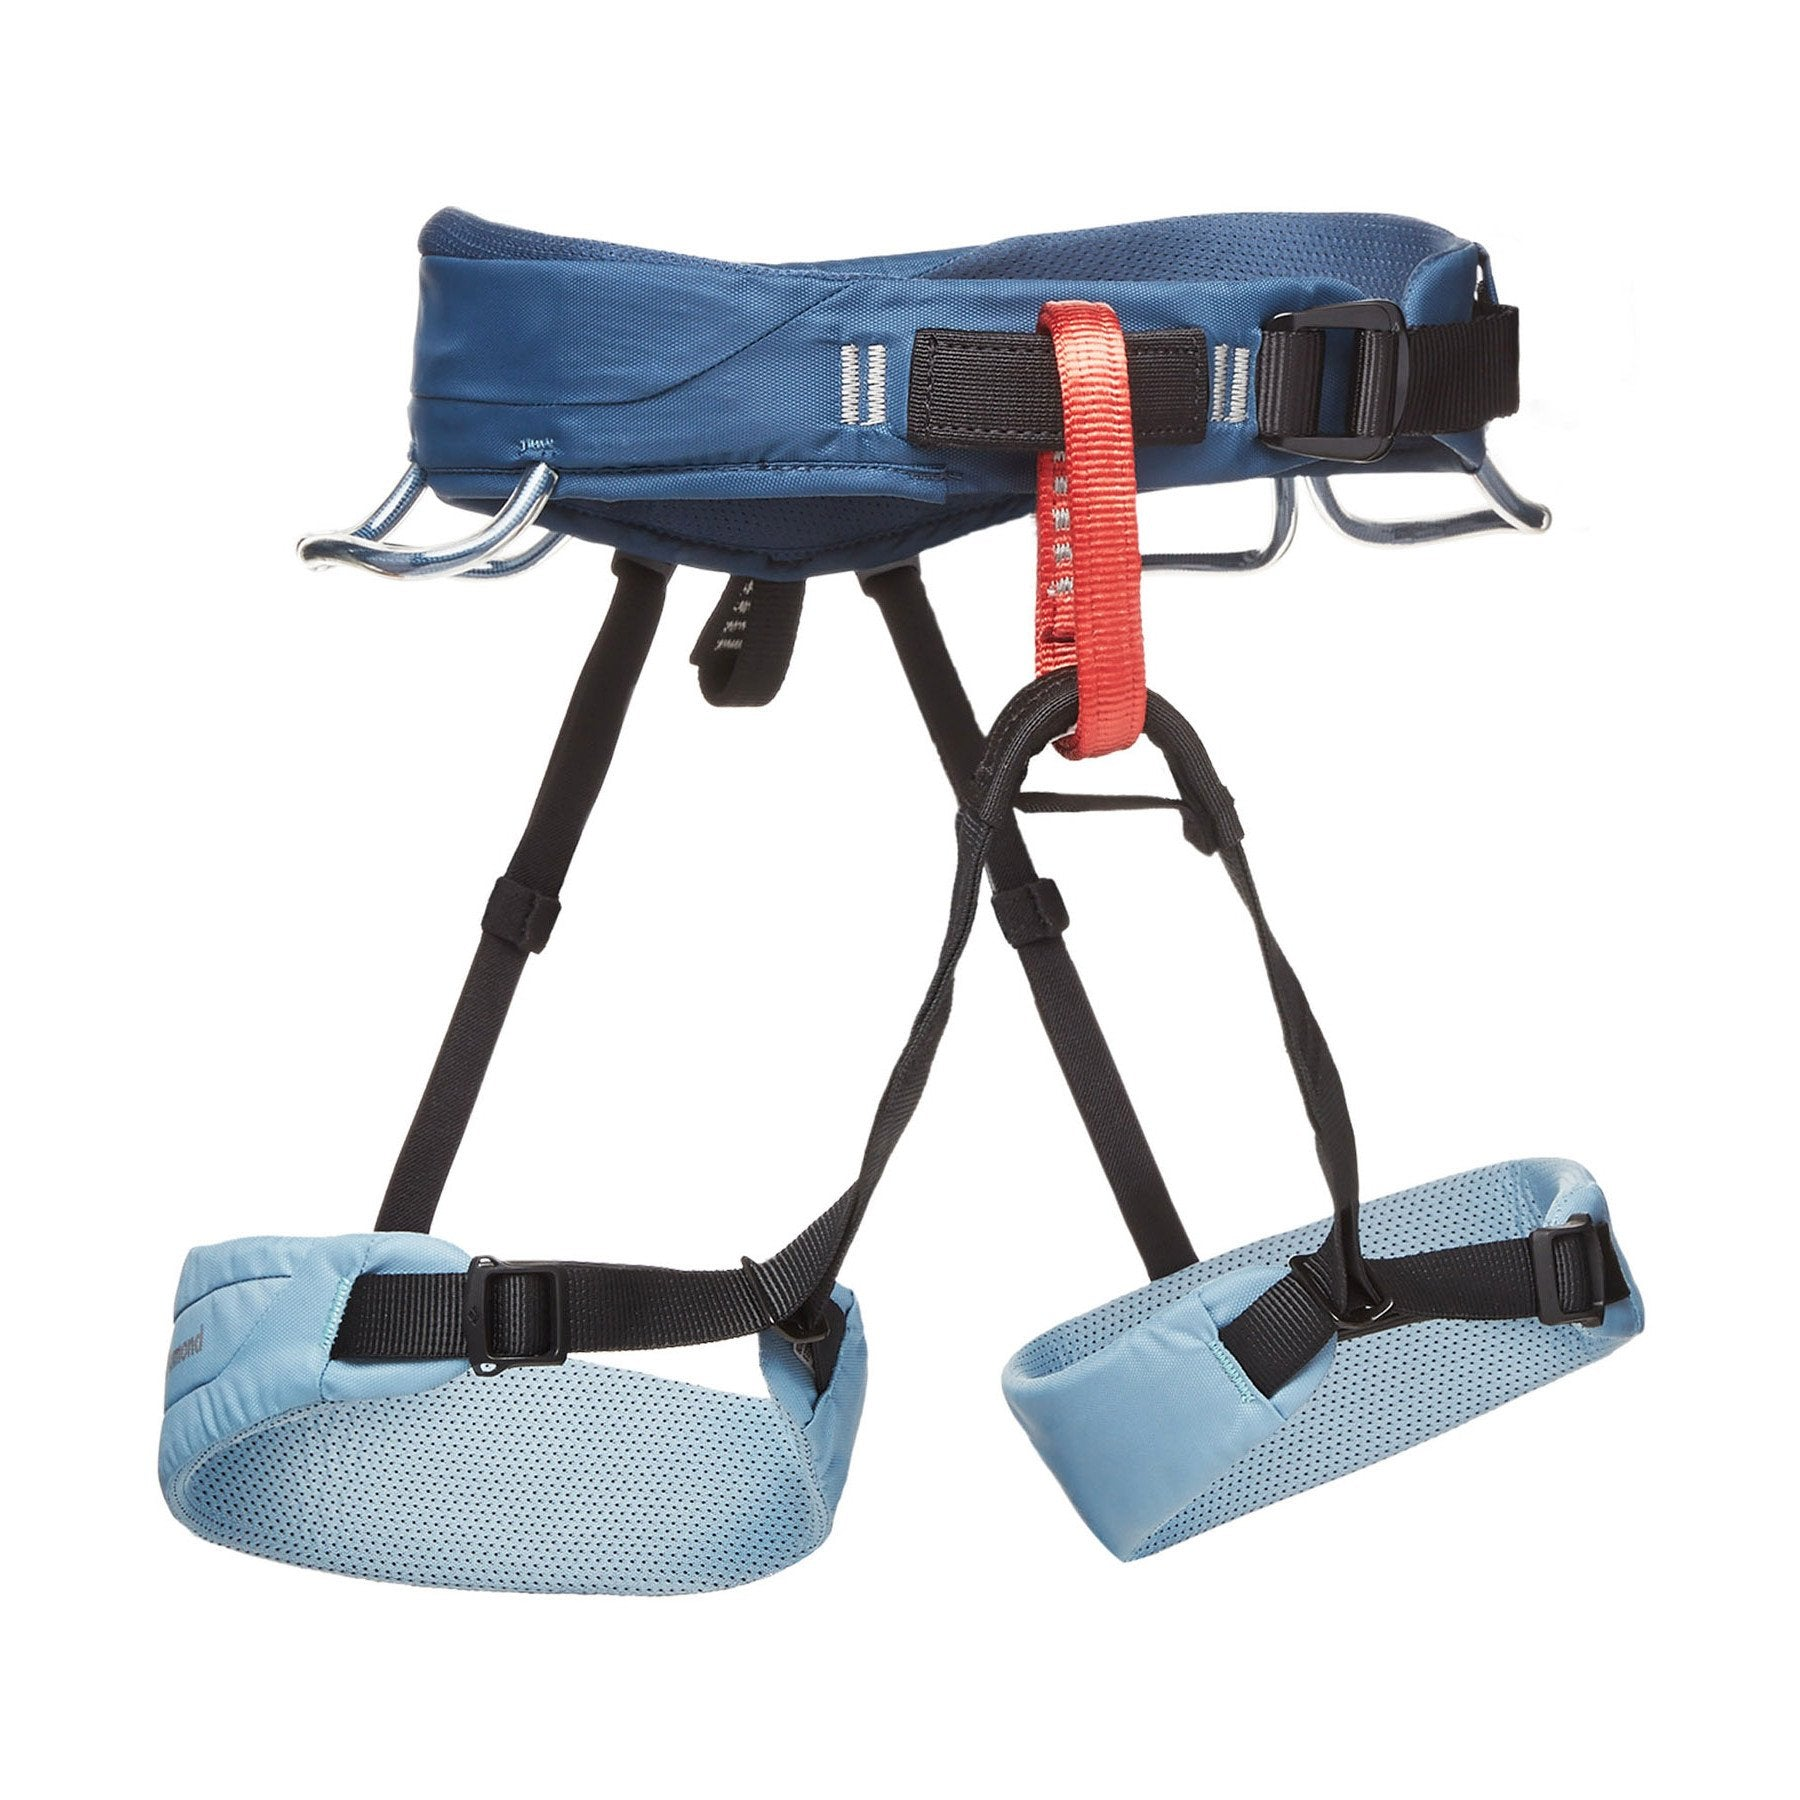 Black Diamond Momentum Womens climbing harness, in blue, black and red colours